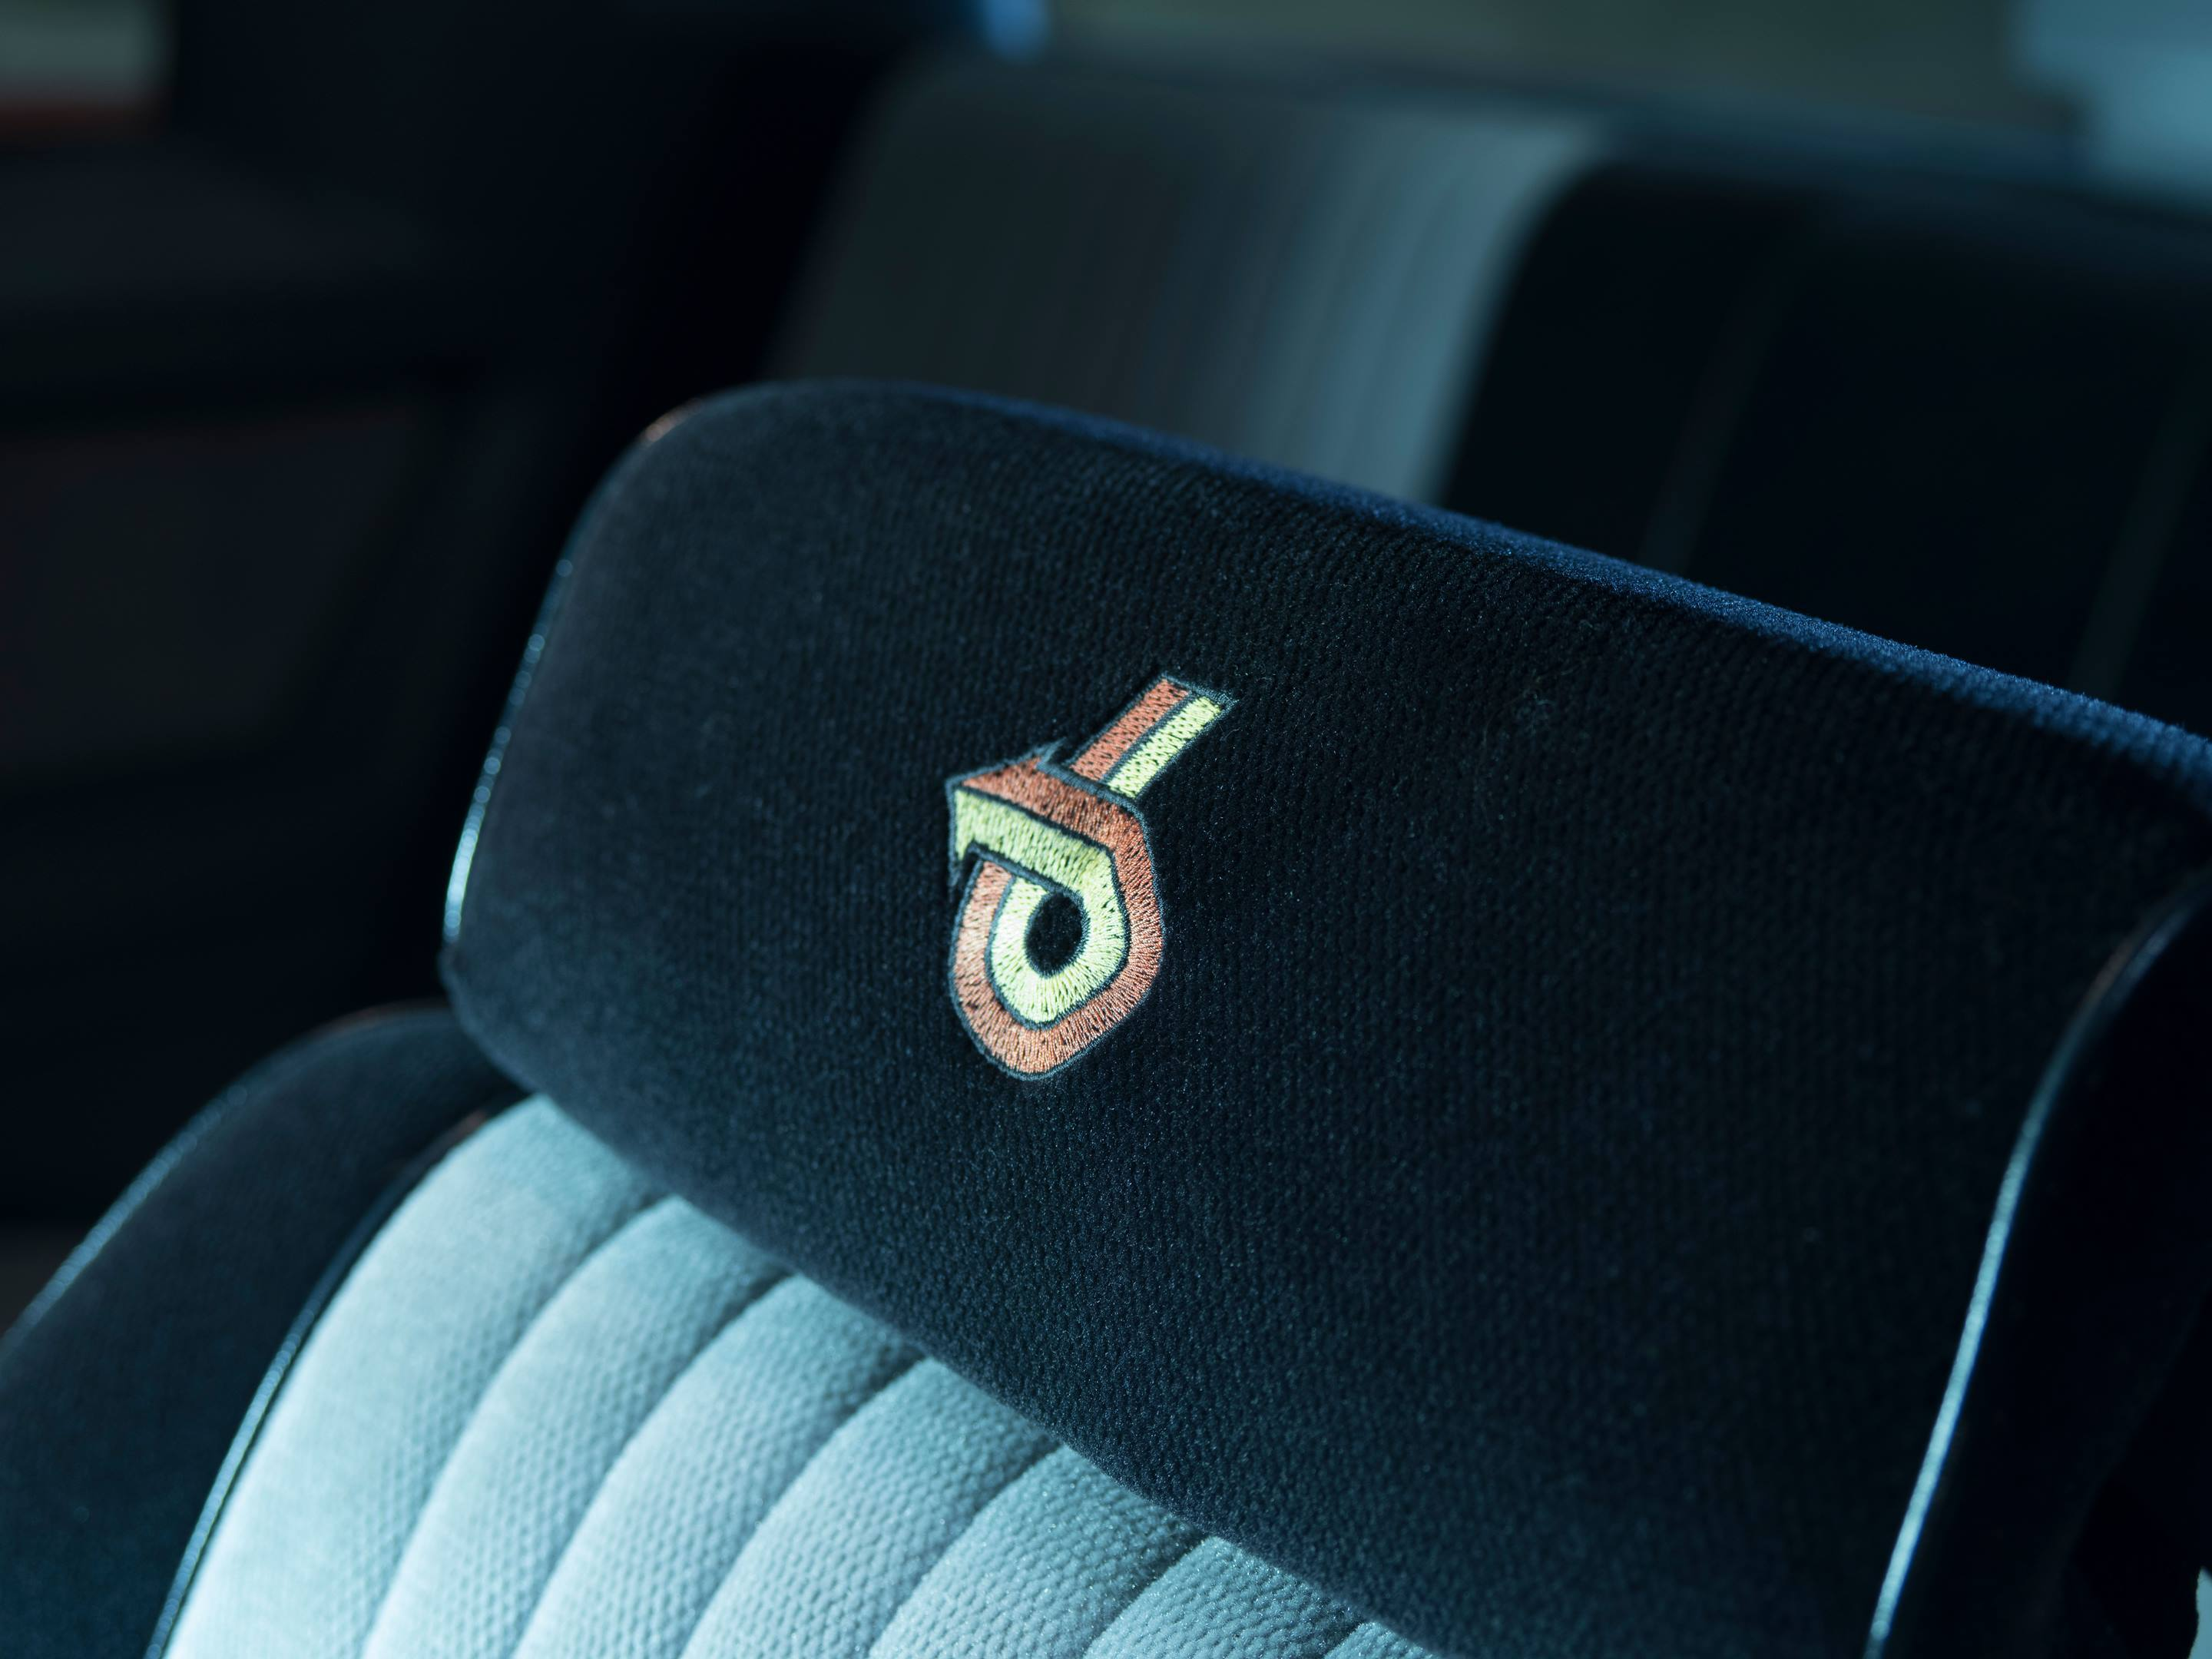 1987 Buick GNX seat detail